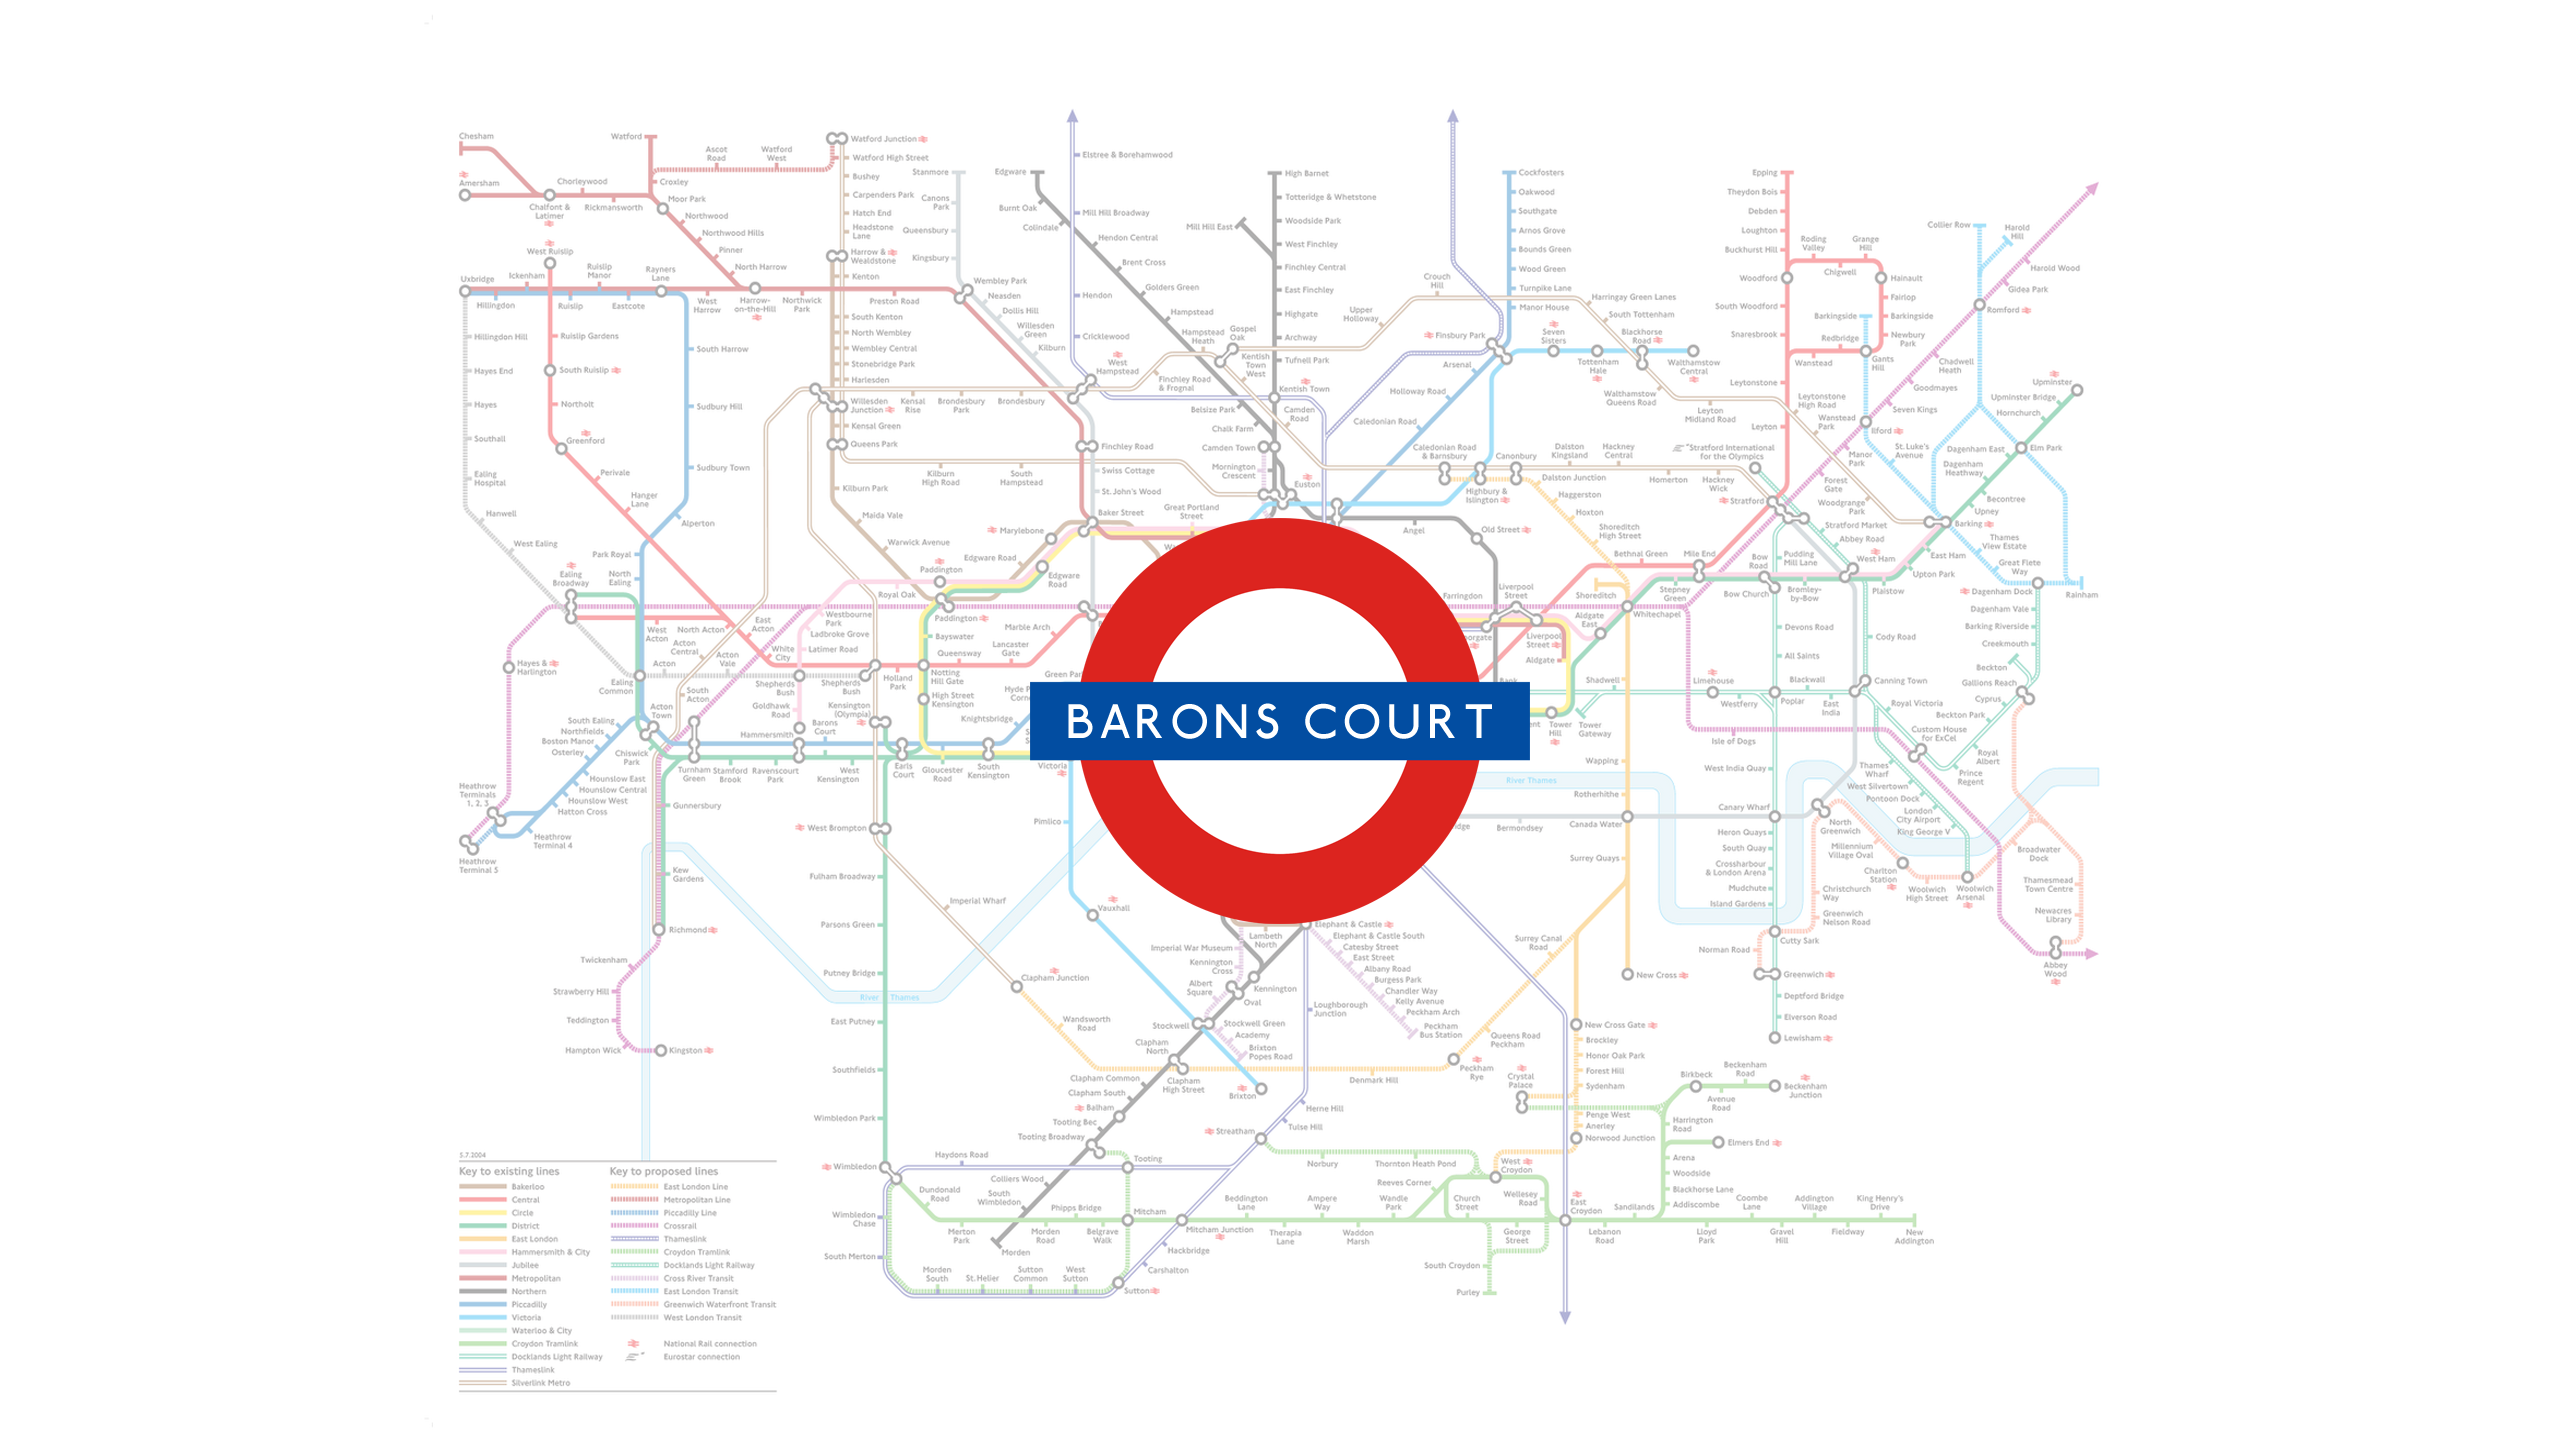 Barons Court (Map)